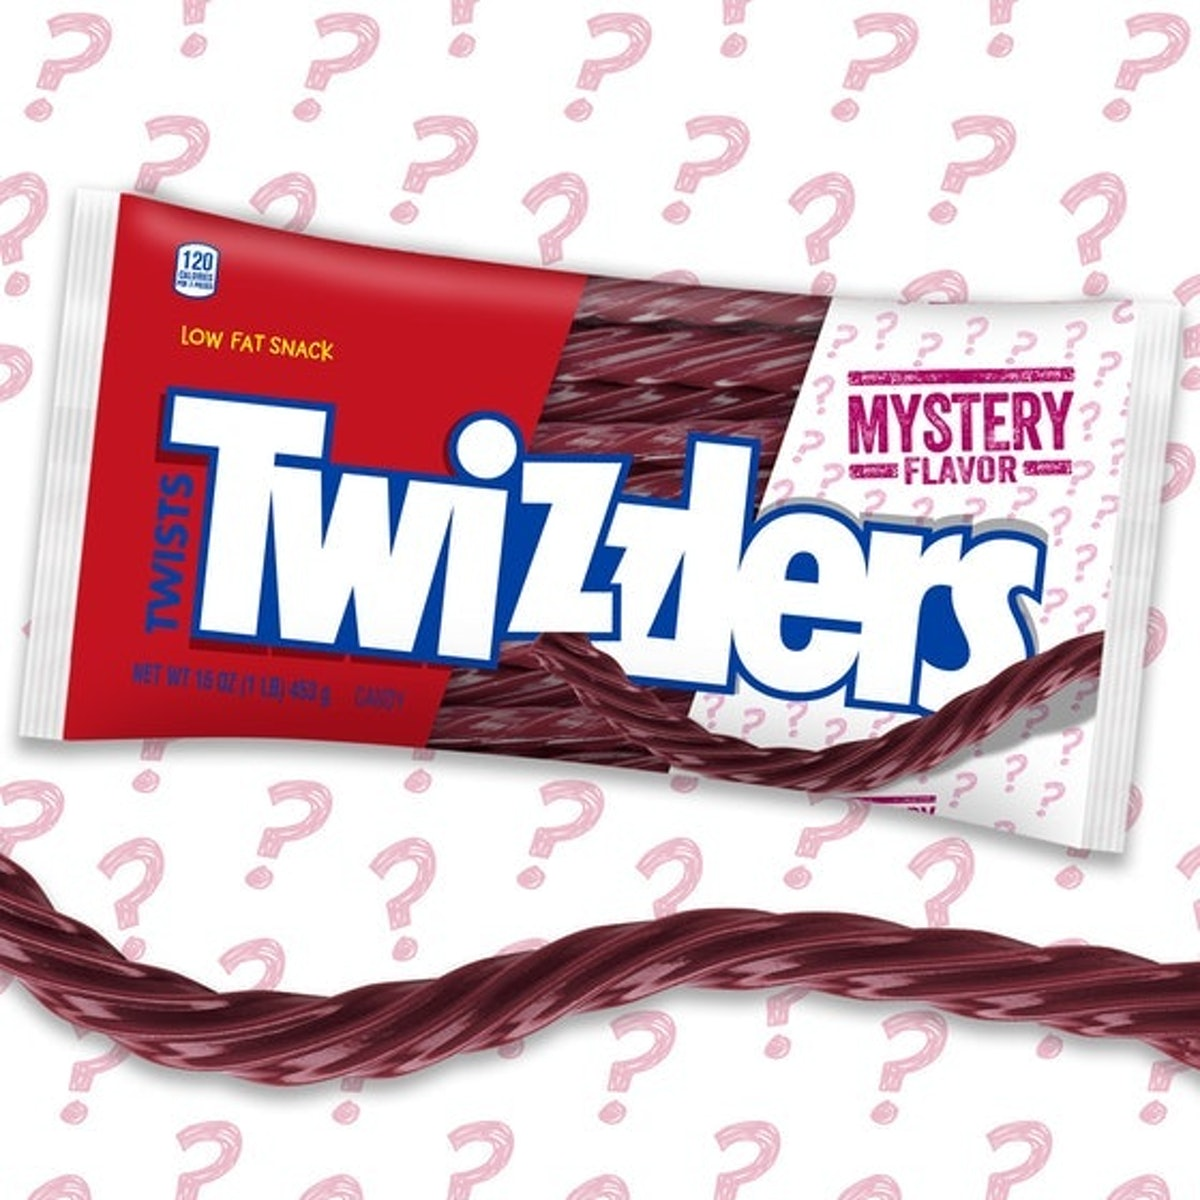 Twizzlers finally unveiled what its 2021 Mystery Flavor is, and it's definitely a berry.